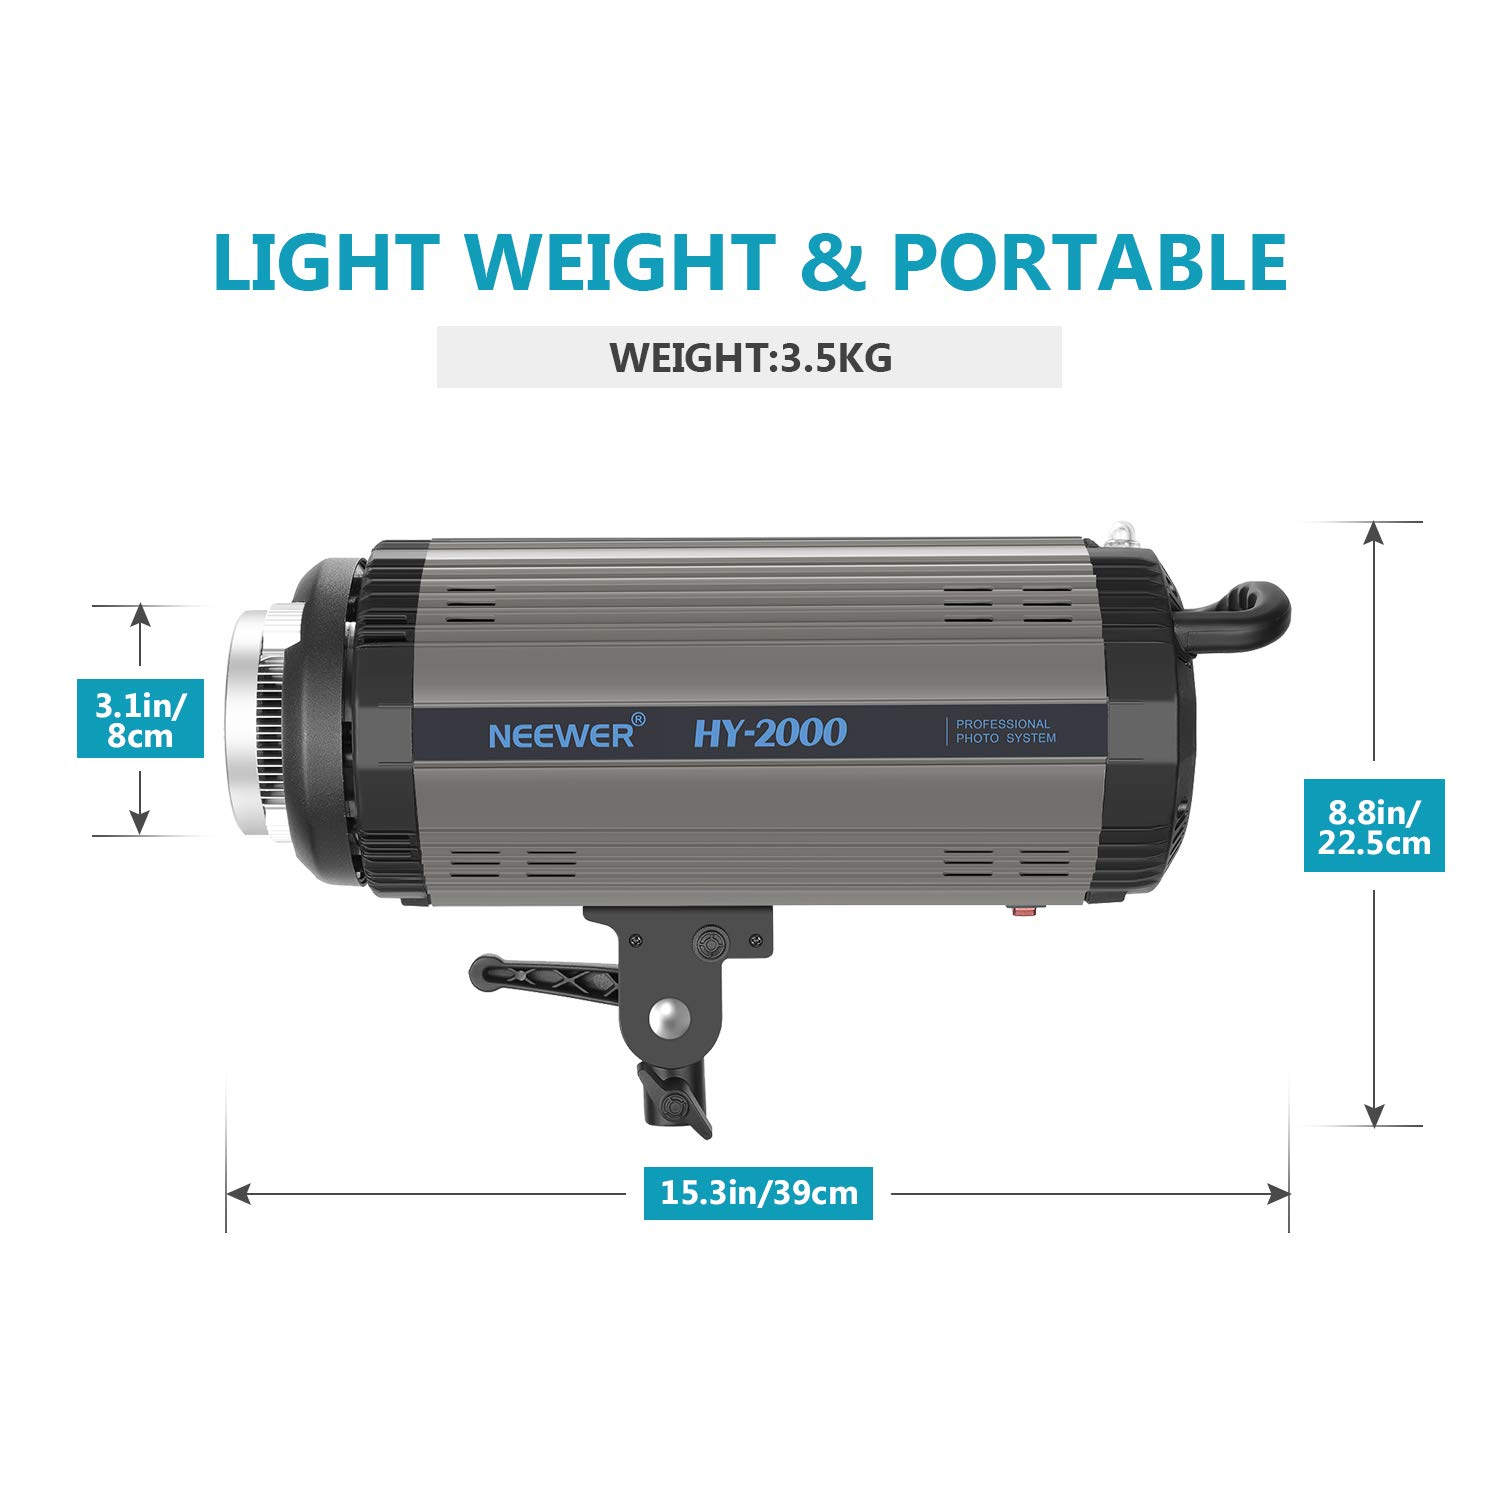 Neewer SL-60W LED Video Light White 5600K Version 60W CRI 95+ Continuous Lighting Bowens Mount for Video Recording Outdoor Shooting Children Photography TLCI 90+ with Remote Control and Reflector